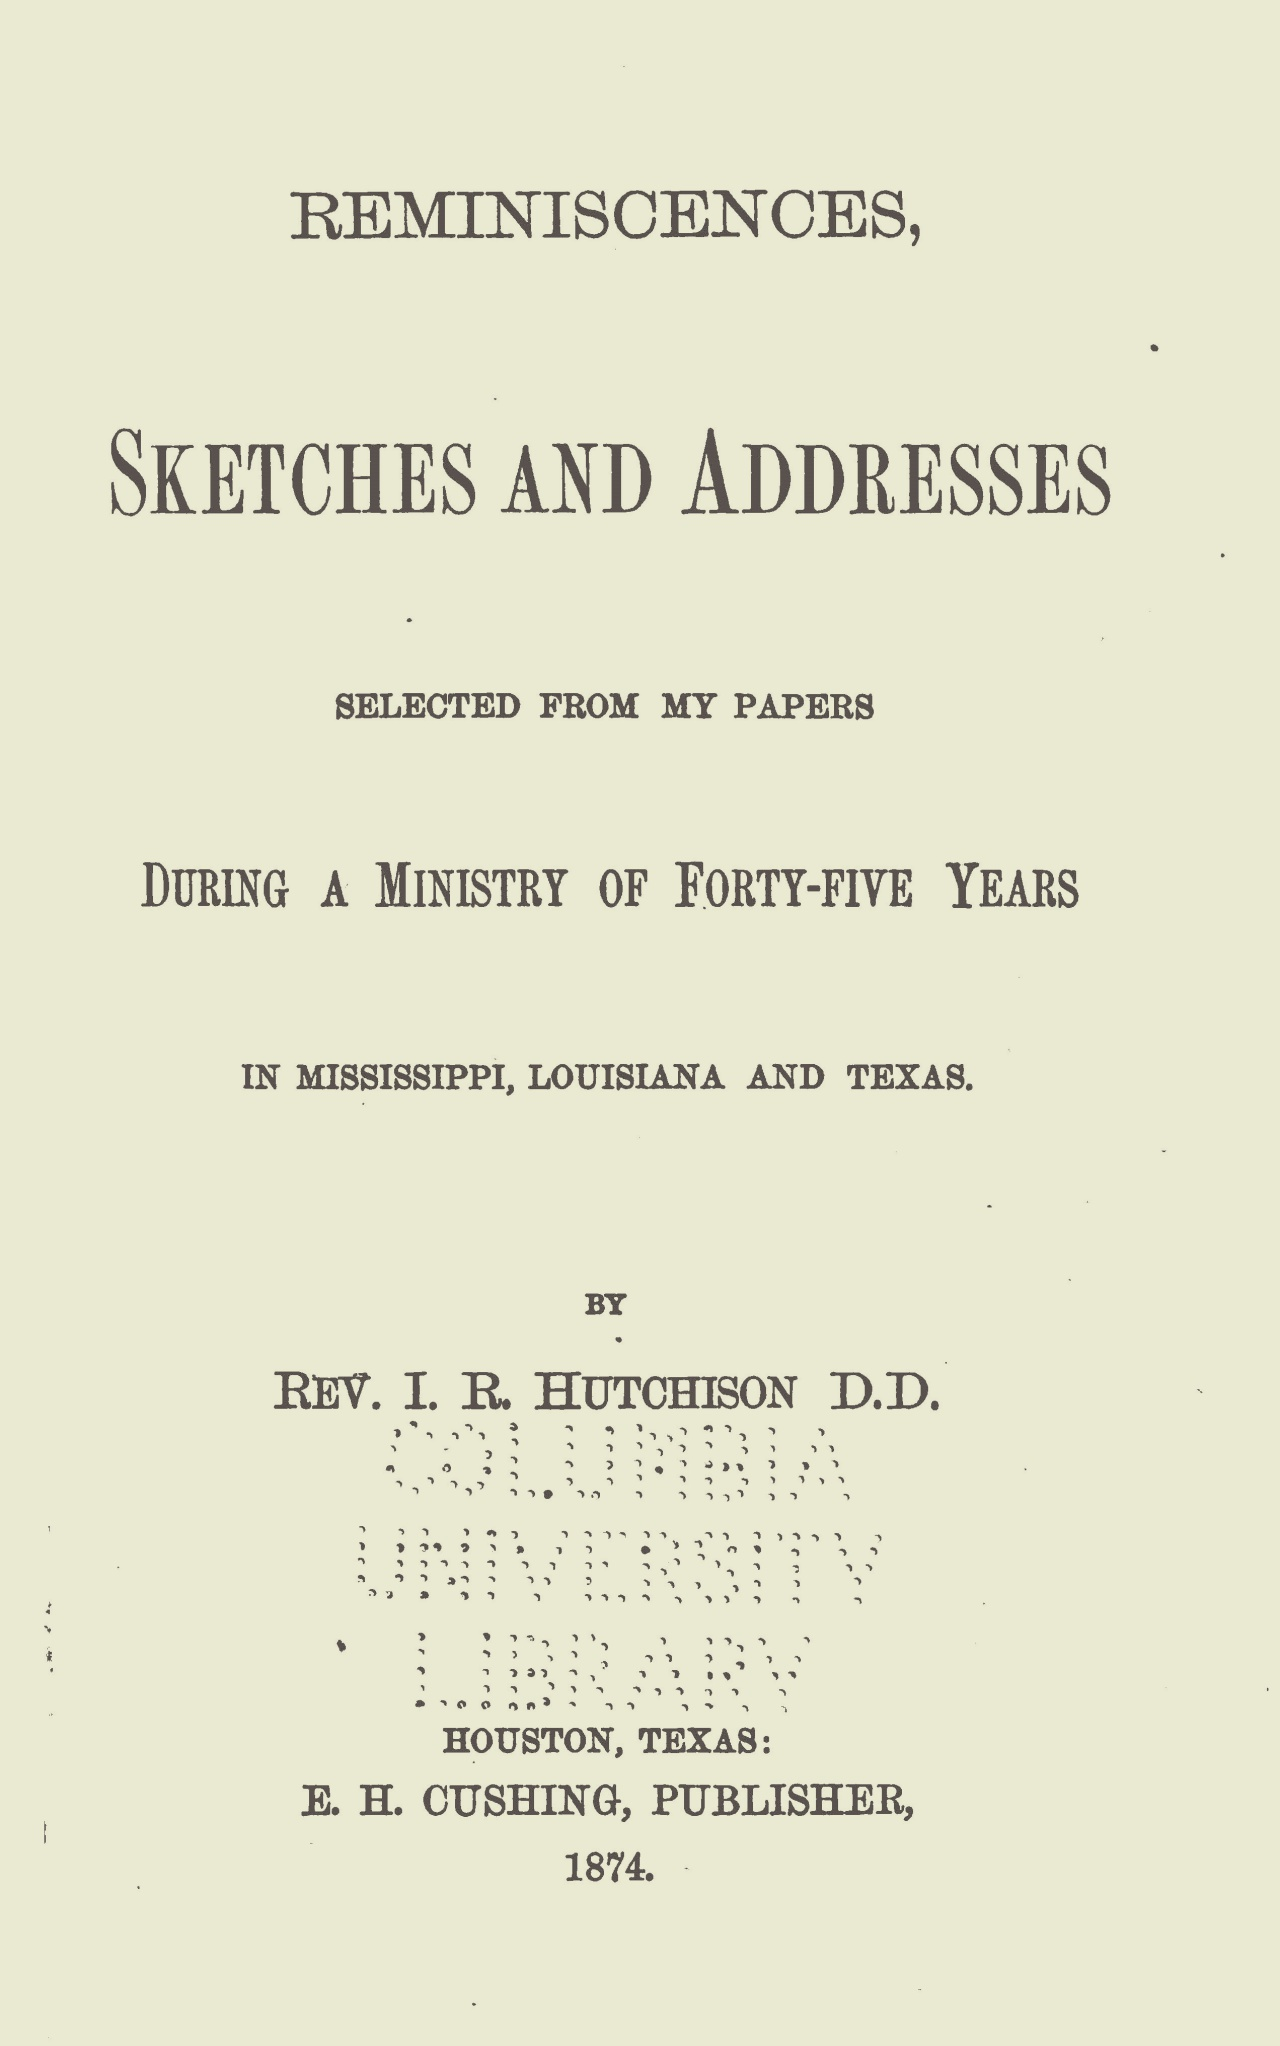 Hutchison, John Russell, Reminiscences, Sketches and Addresses Title Page.jpg